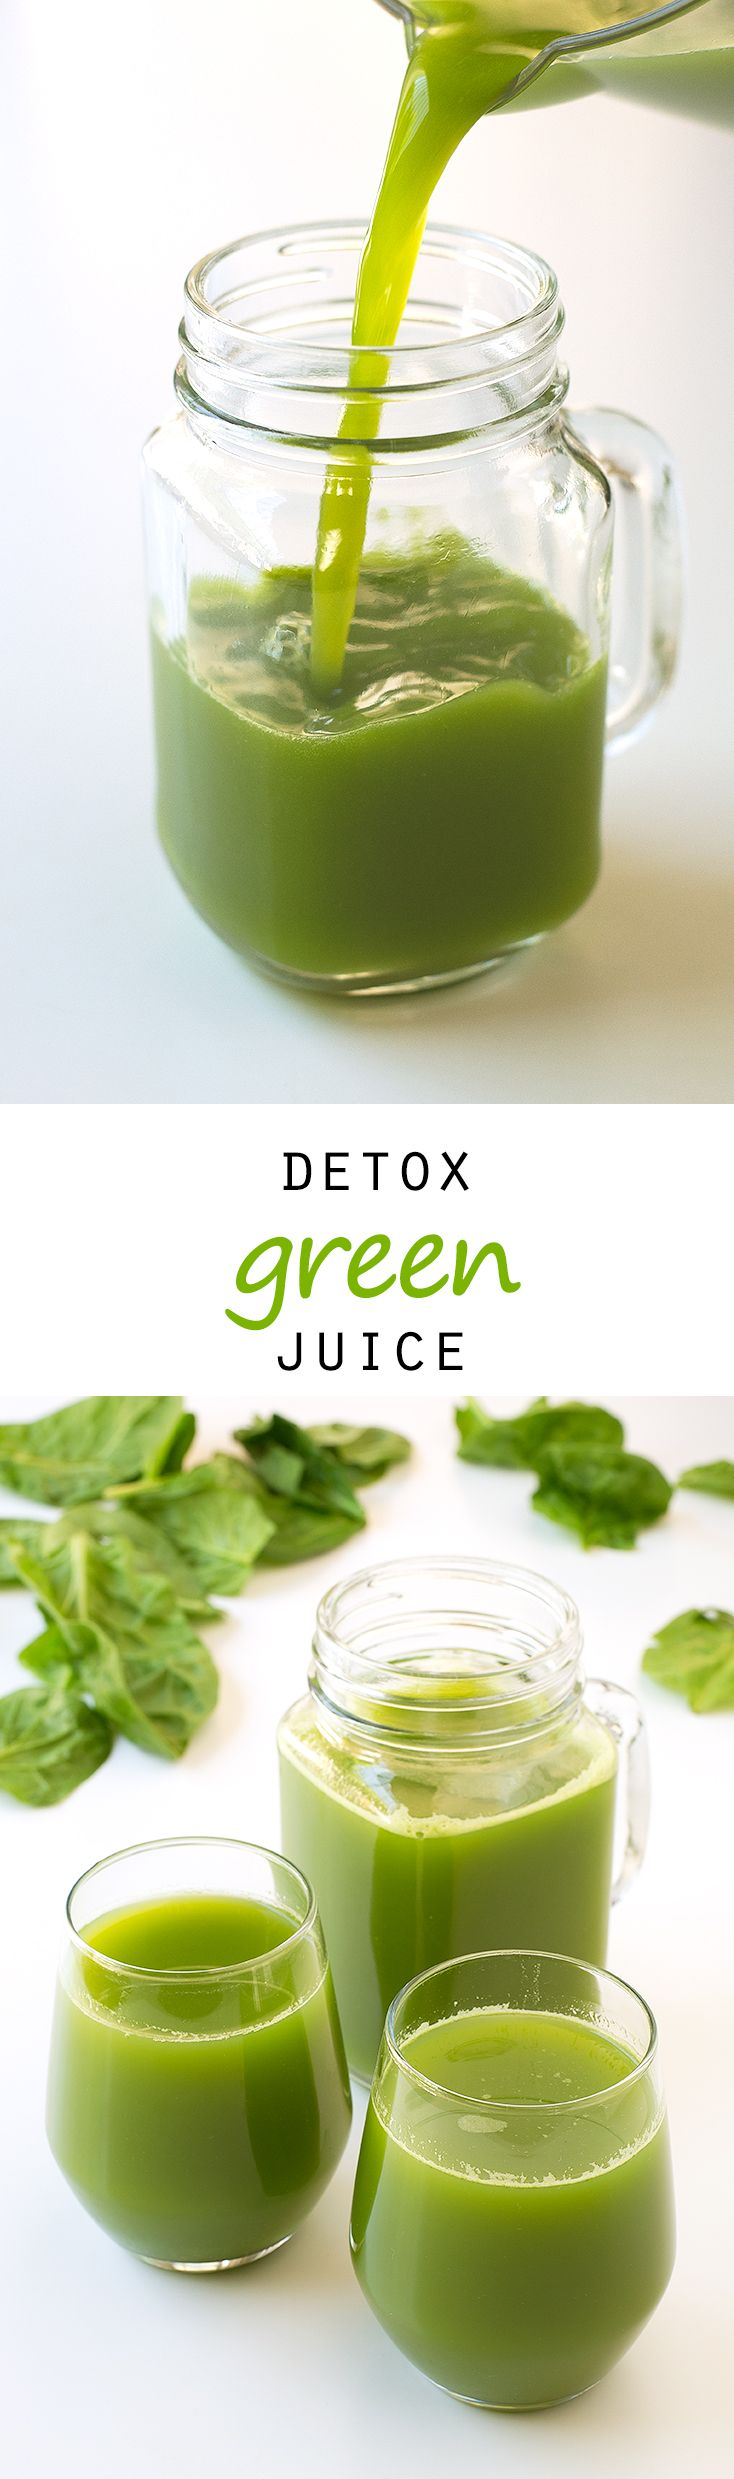 Detox Green Juice #vegan #glutenfree